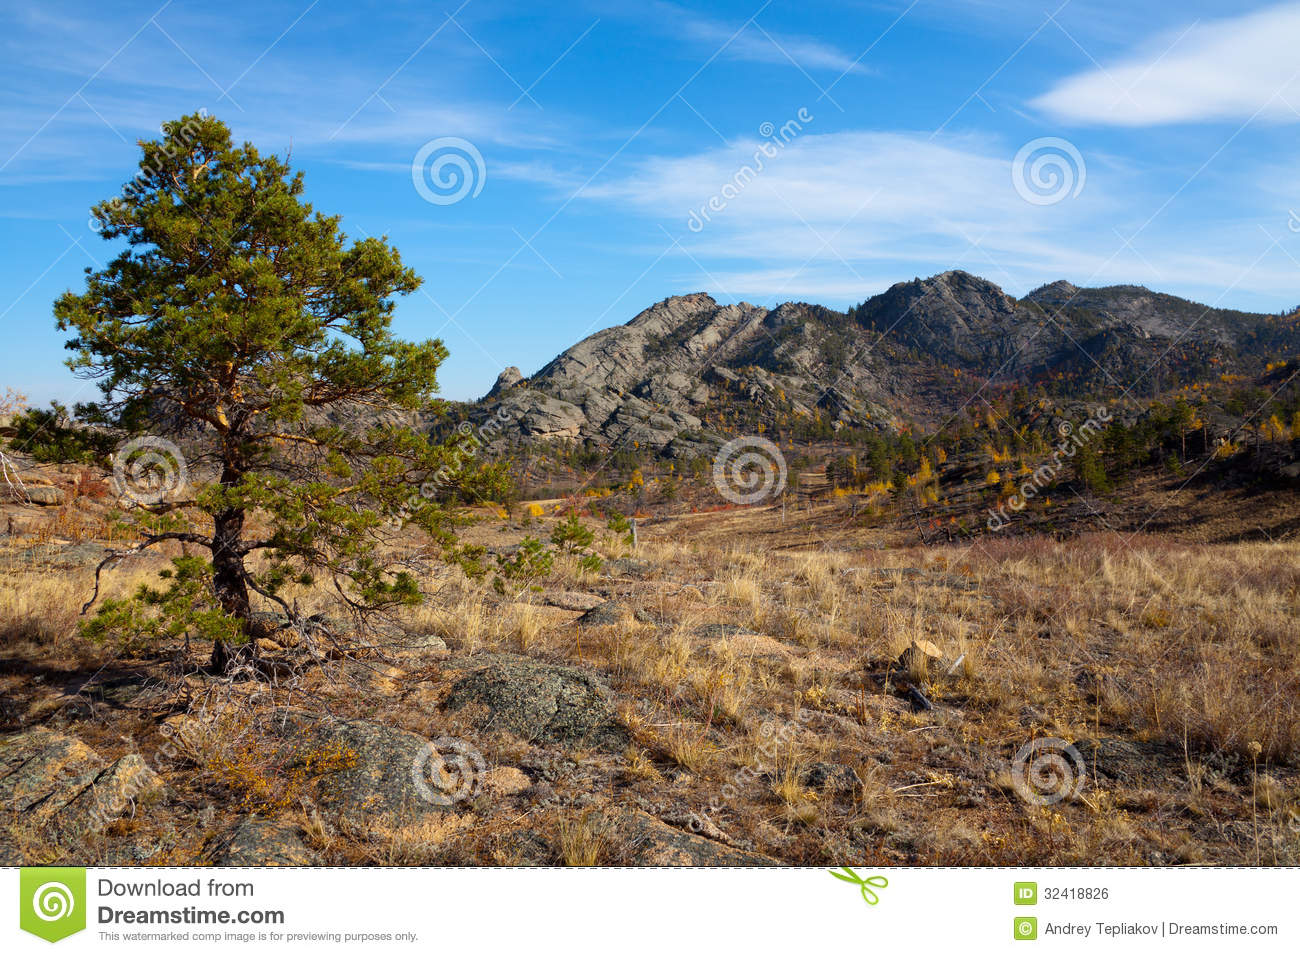 Royalty free stock image lonely pine tree in the desert mountains